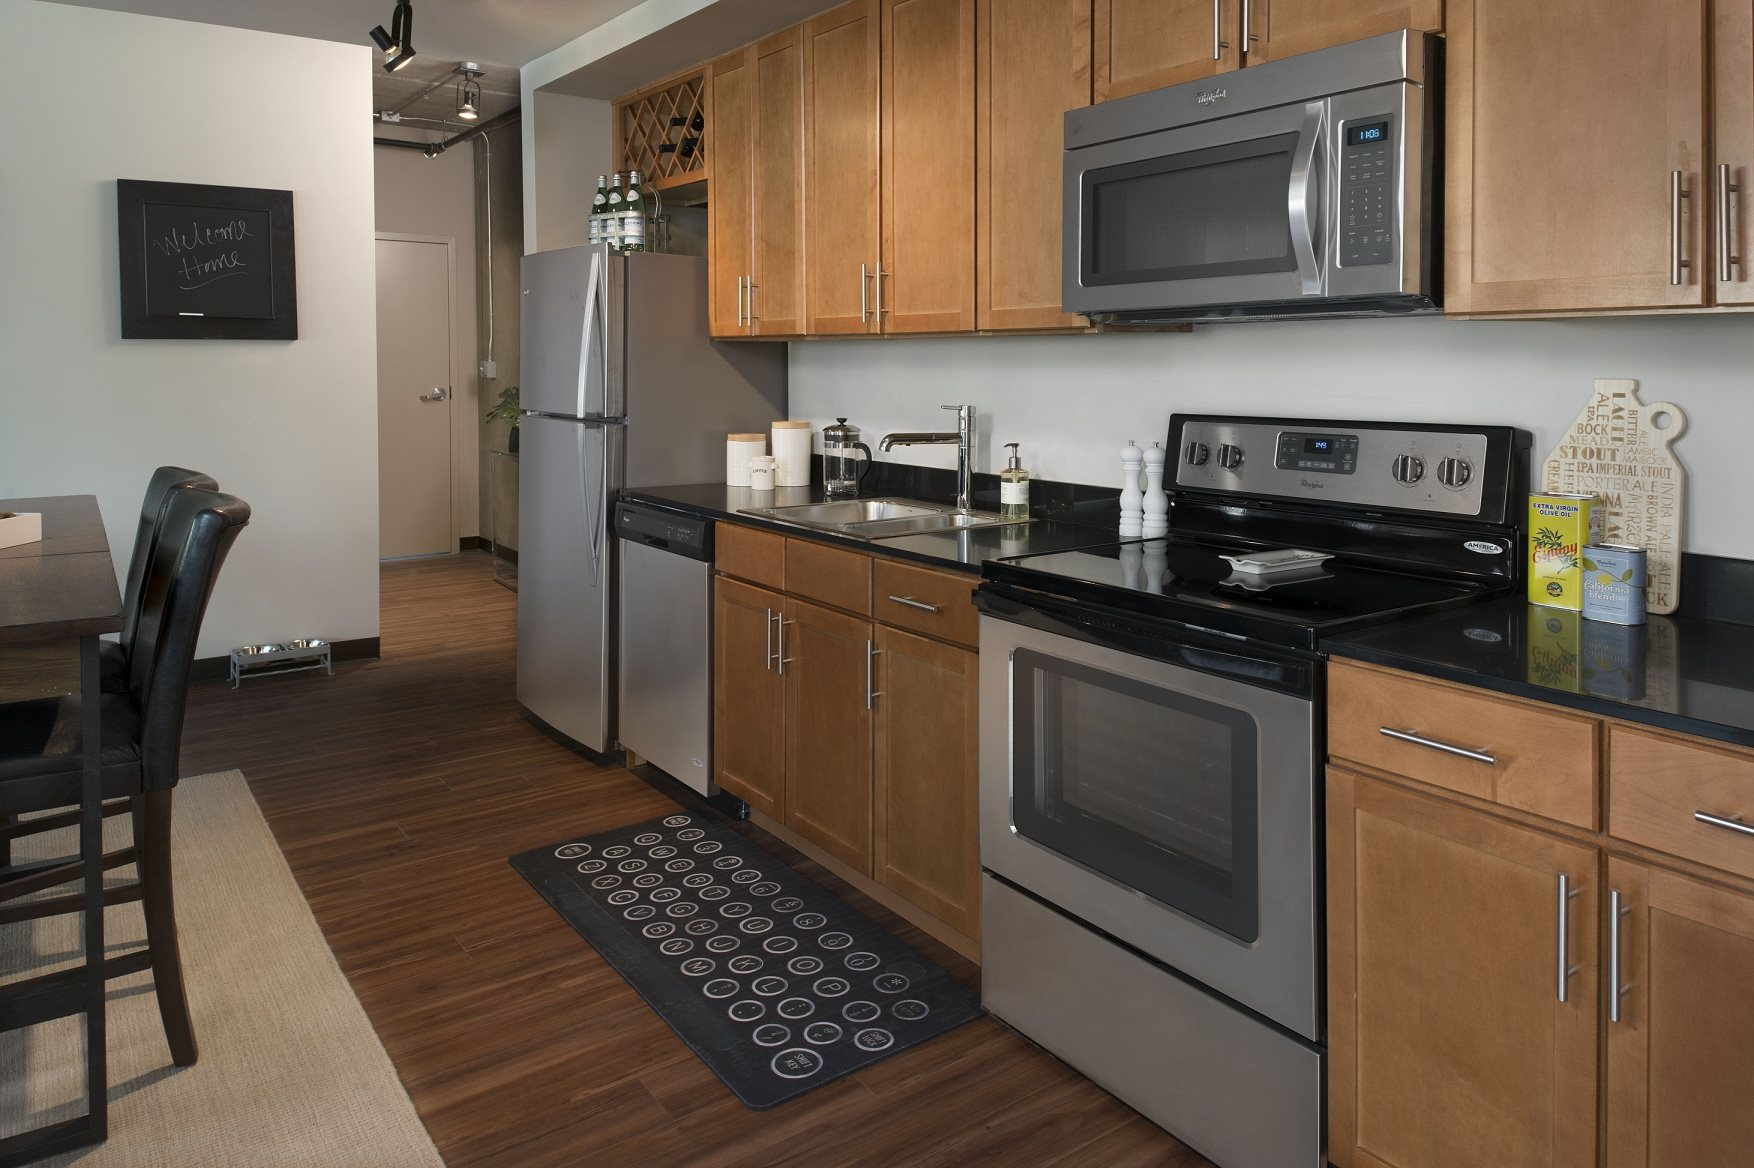 stainless steel appliances in open kitchens, 618 South Main, 48104